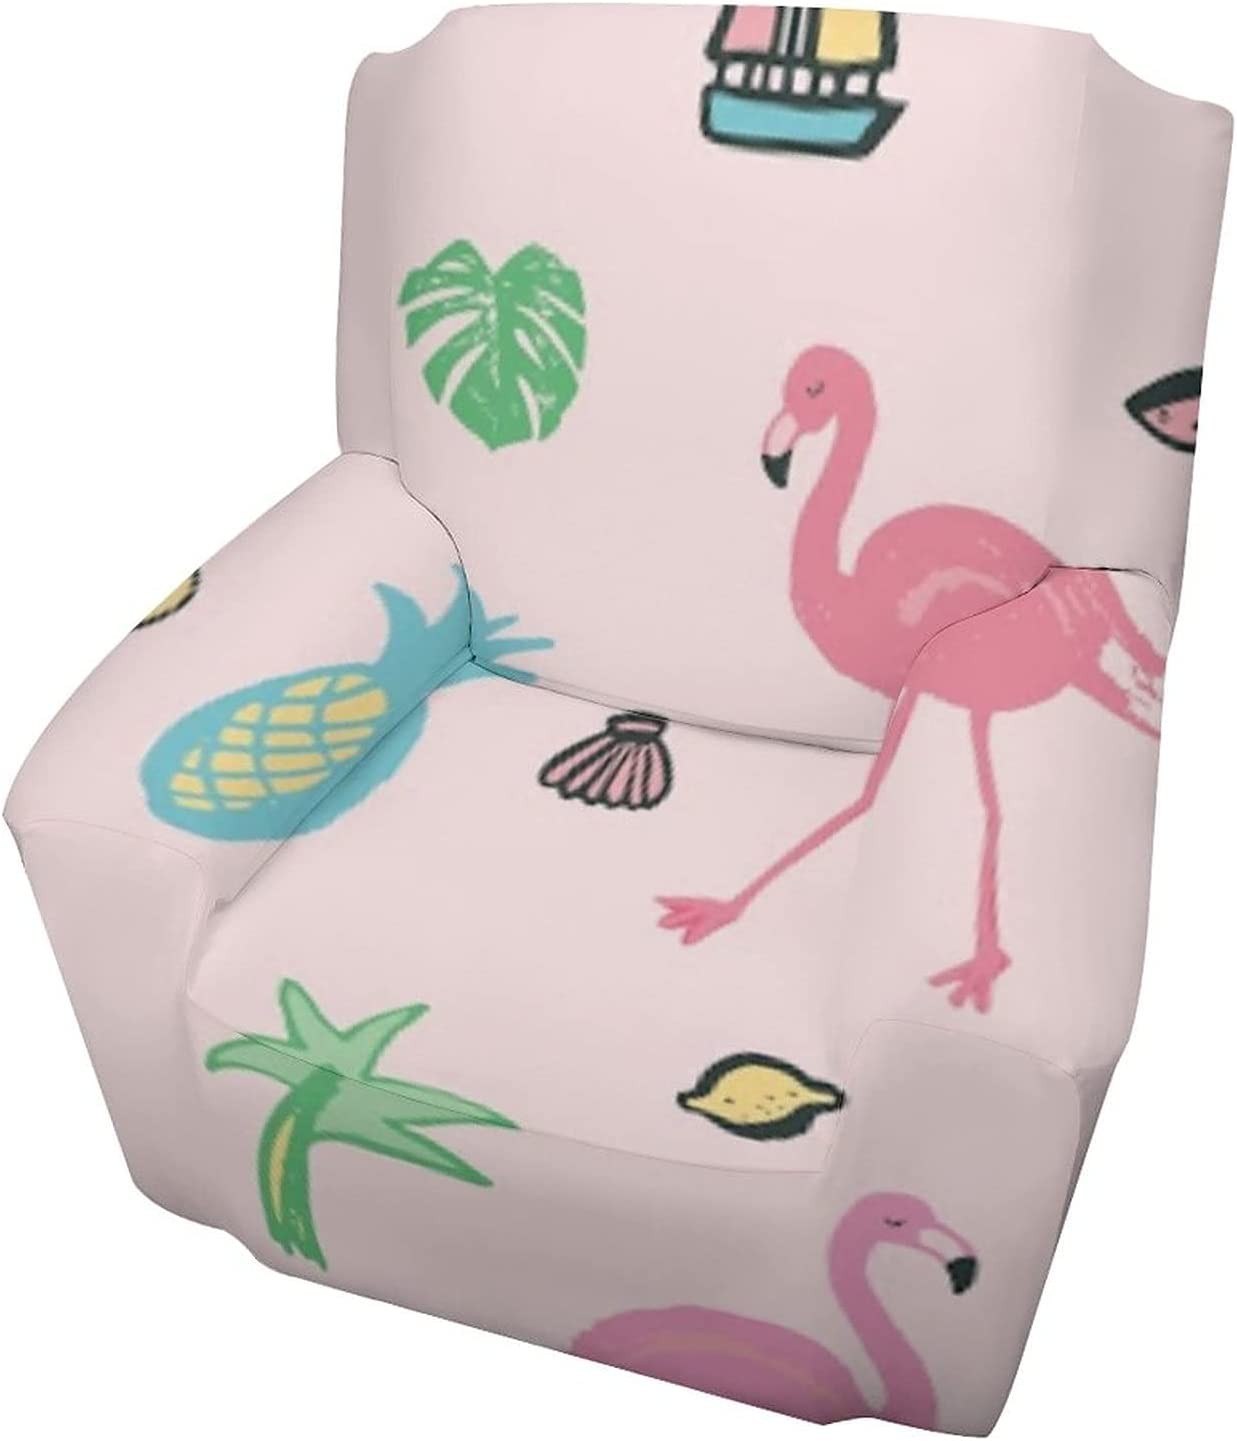 Uyomarer Single Person Sofa Set Directly managed store Flamingo Pink Pineapple Couch Co 5% OFF